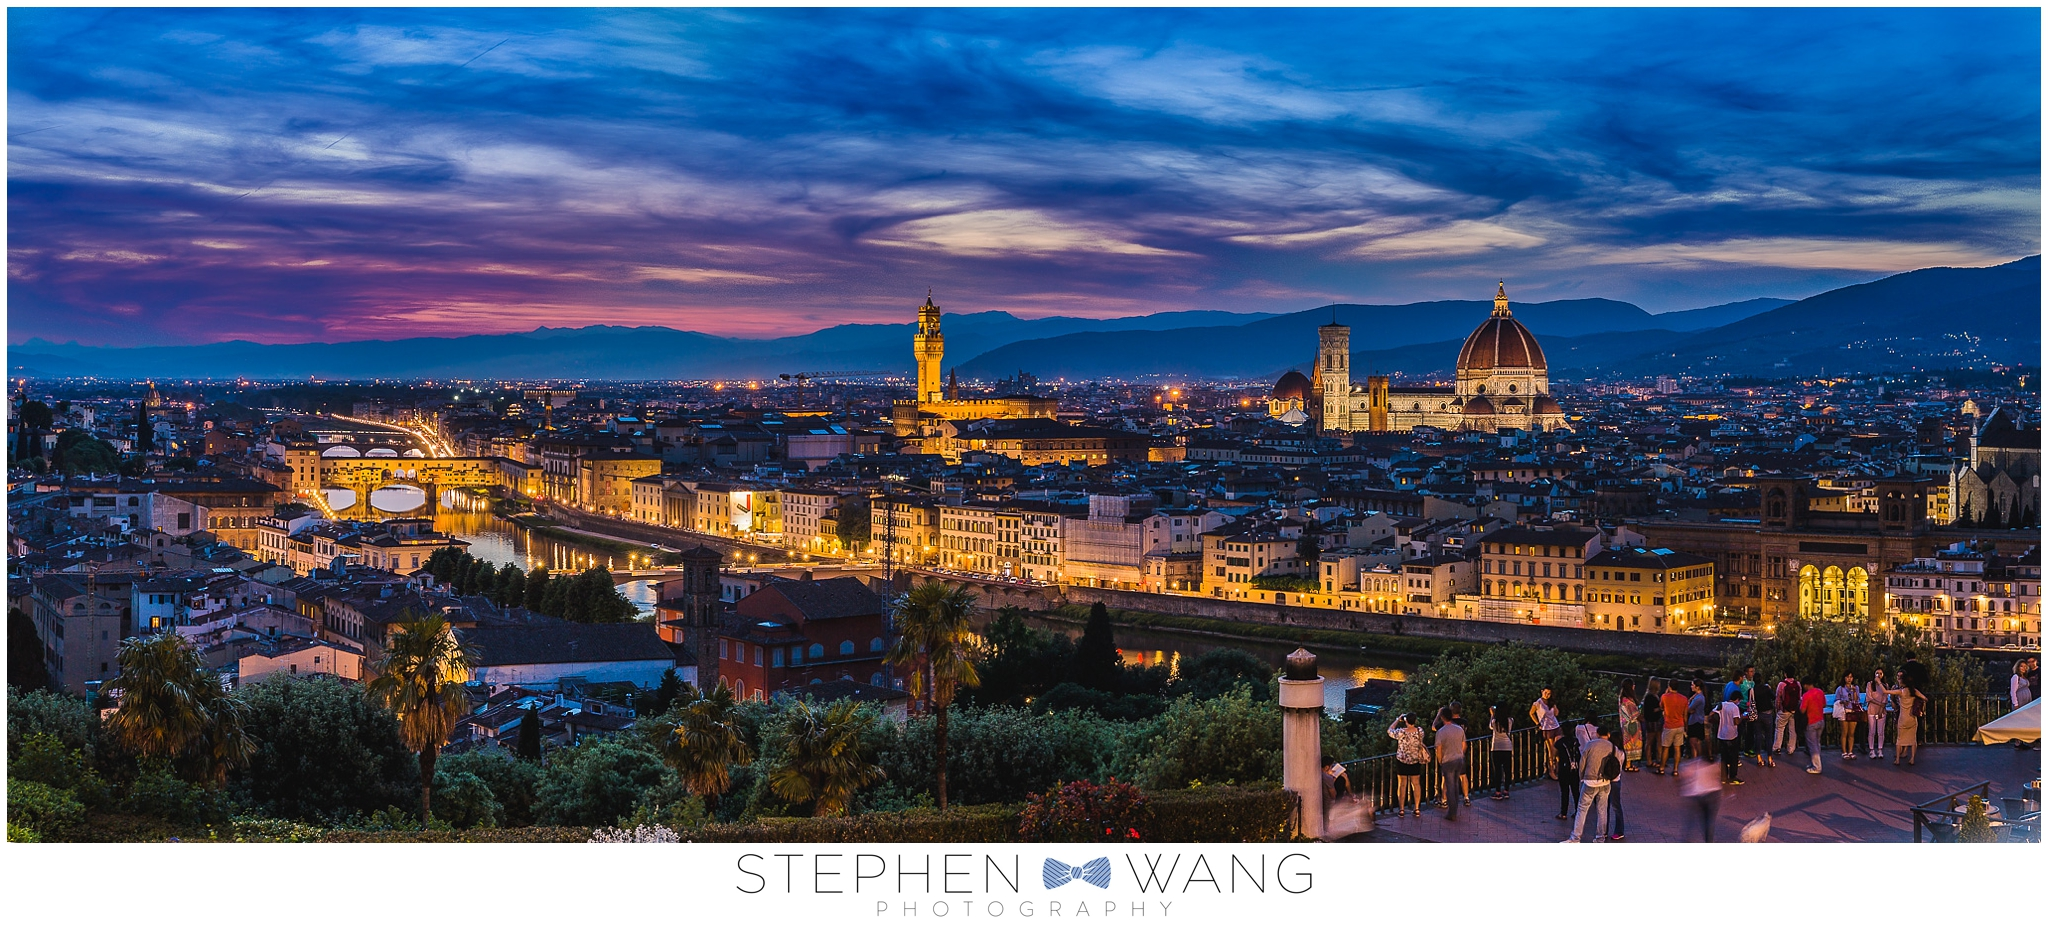 One of my favorite photos from the trip - a view of Florence from Piazzale Michelangelo at sunset.  It was a super popular spot, and for good reason.  The view was amazing.